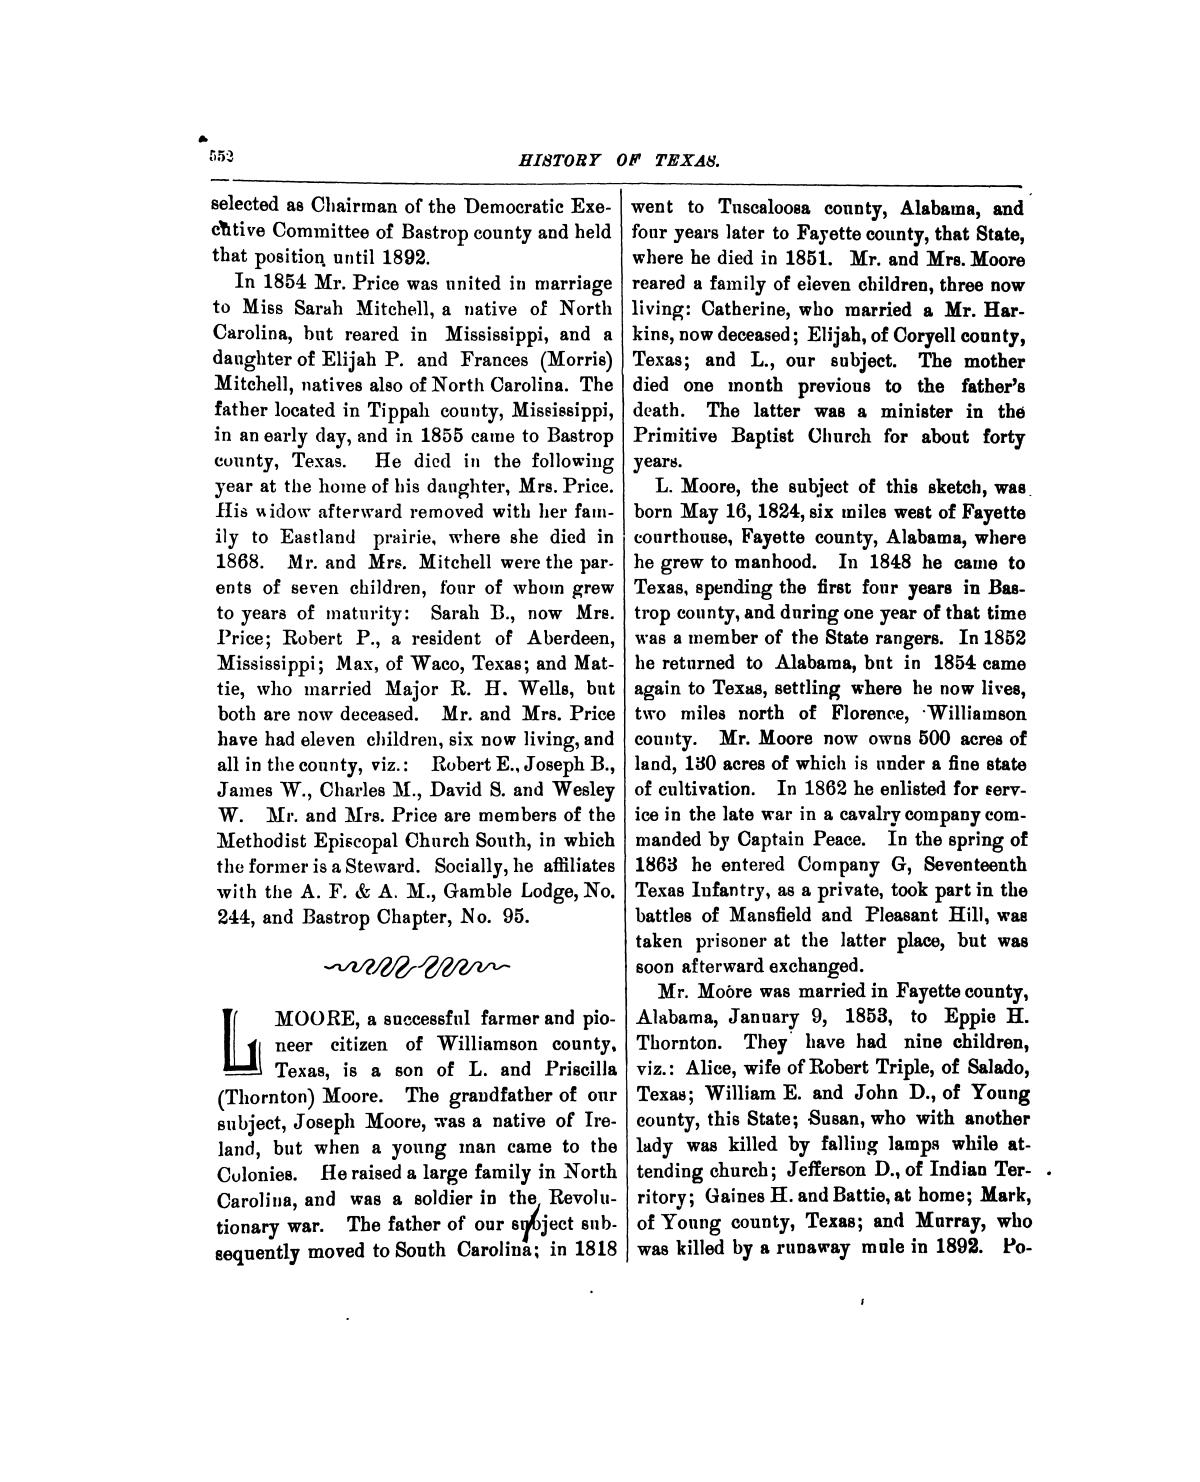 History of Texas, together with a biographical history of Milam, Williamson, Bastrop, Travis, Lee and Burleson counties : containing a concise history of the state, with portraits and biographies of prominent citizens of the above named counties, and personal histories of many of the early settlers and leading families                                                                                                      552